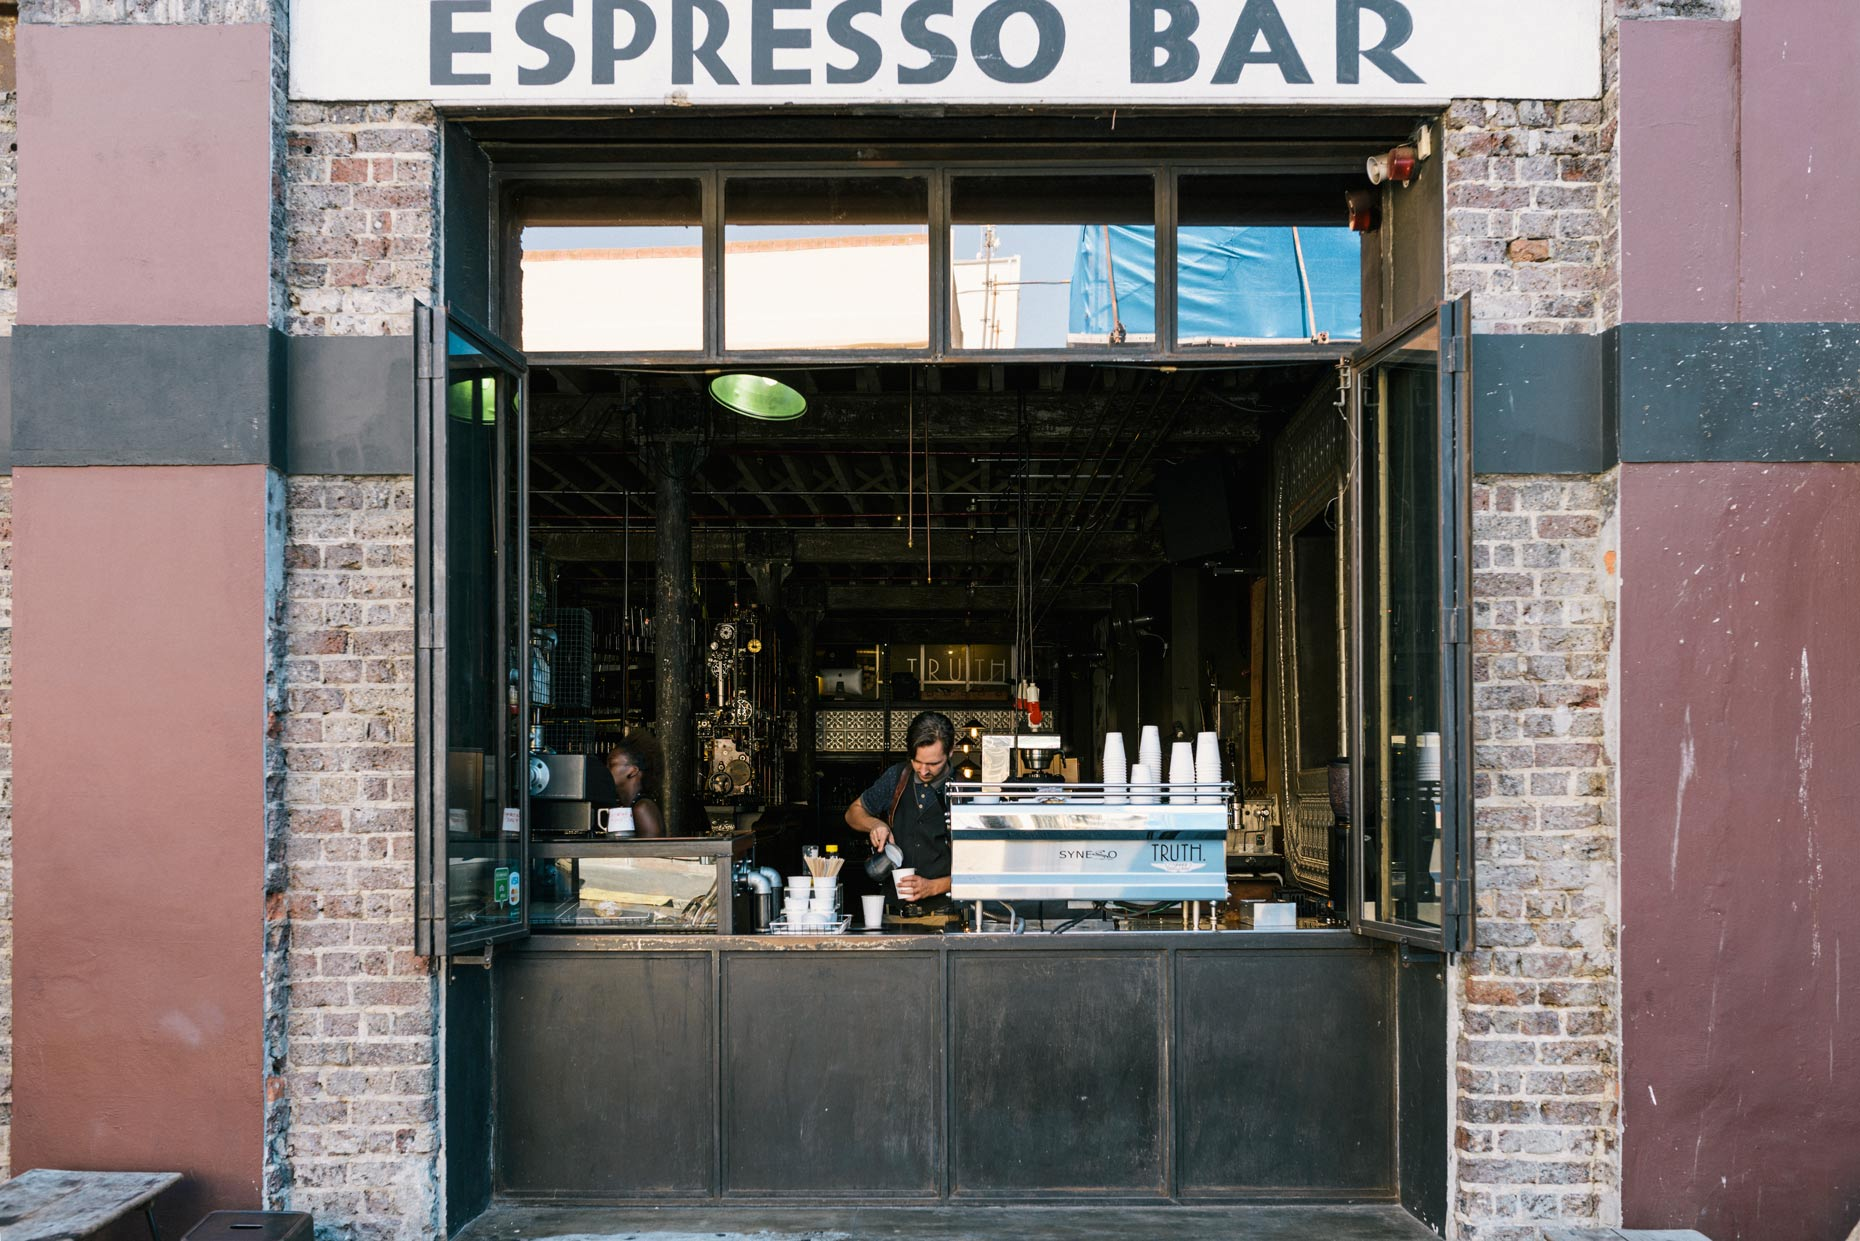 Barista-working-in-outdoor-espresso-bar-cafe-YES